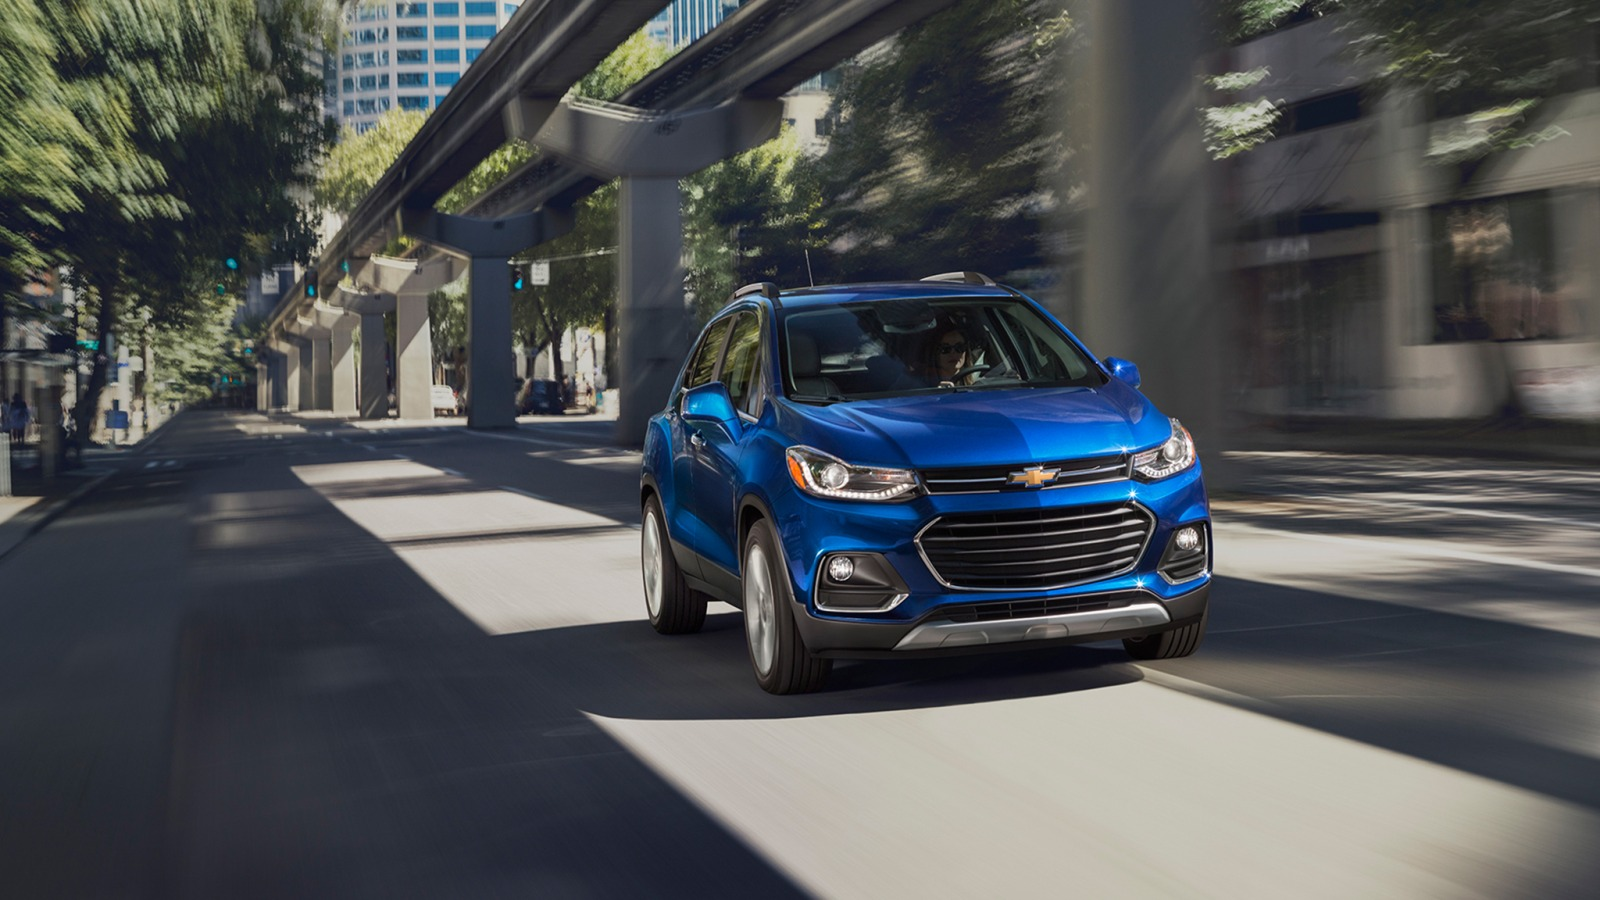 2019 Chevy Trax Review and Rating